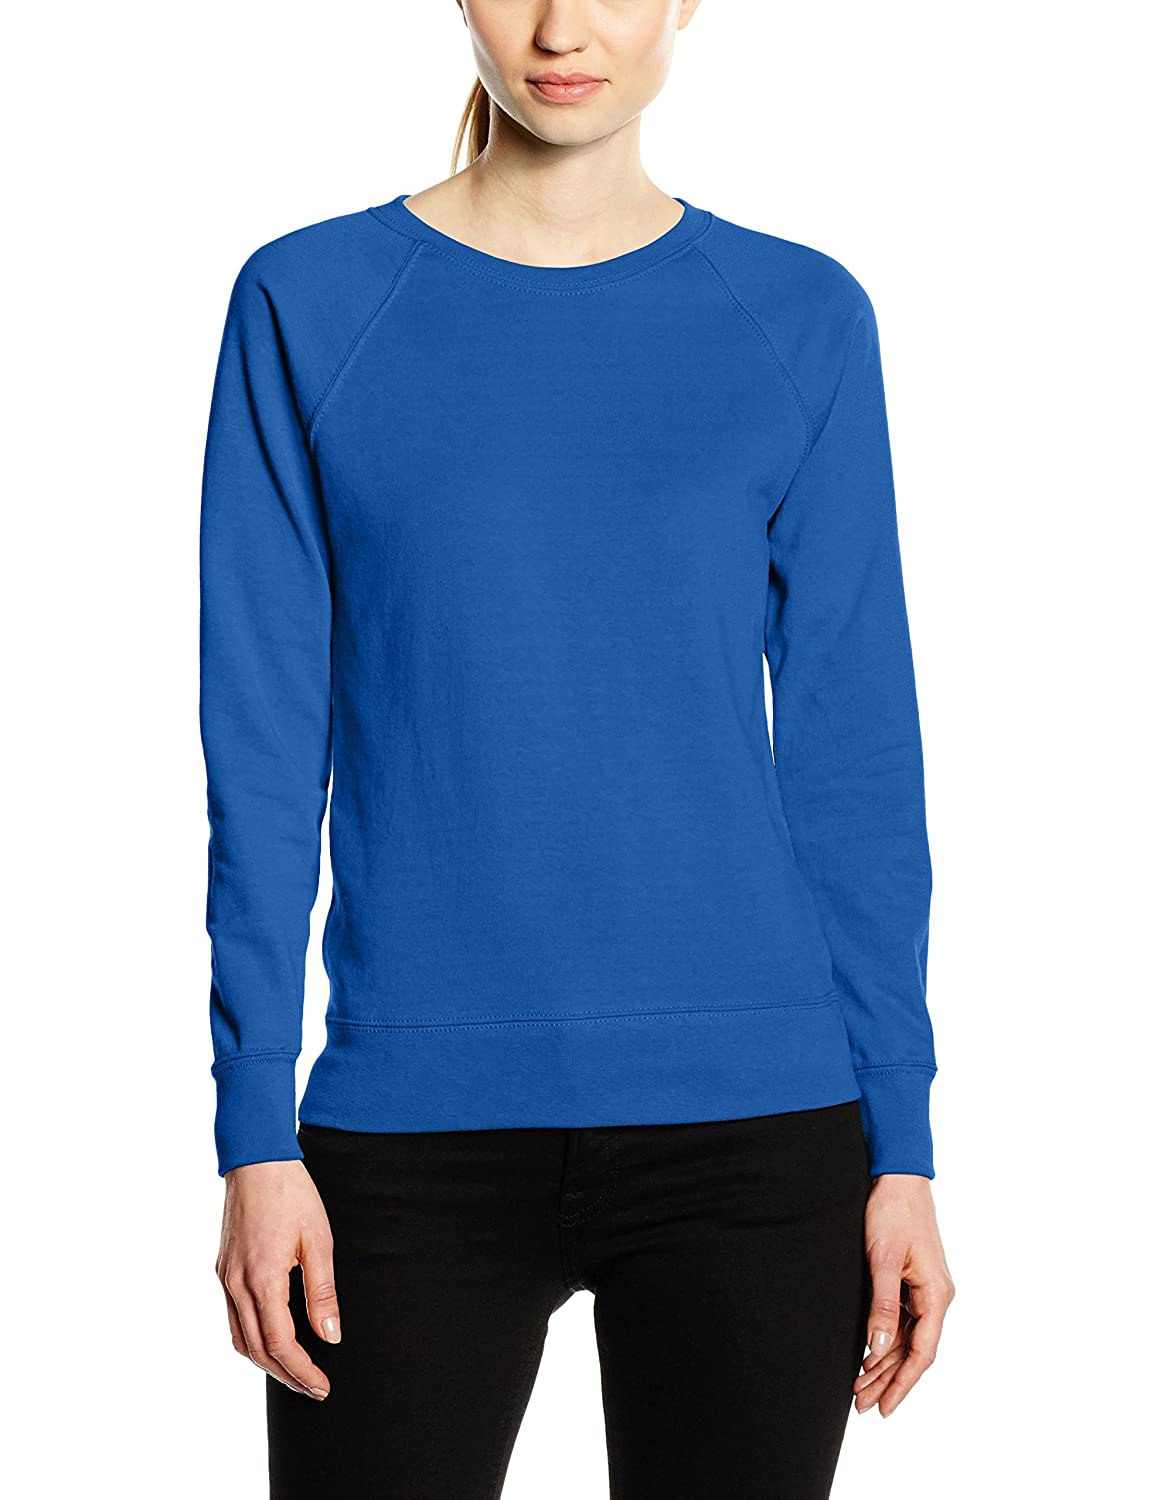 Fruit of the Loom Raglan Lightweight, Felpa Donna 62-146-0